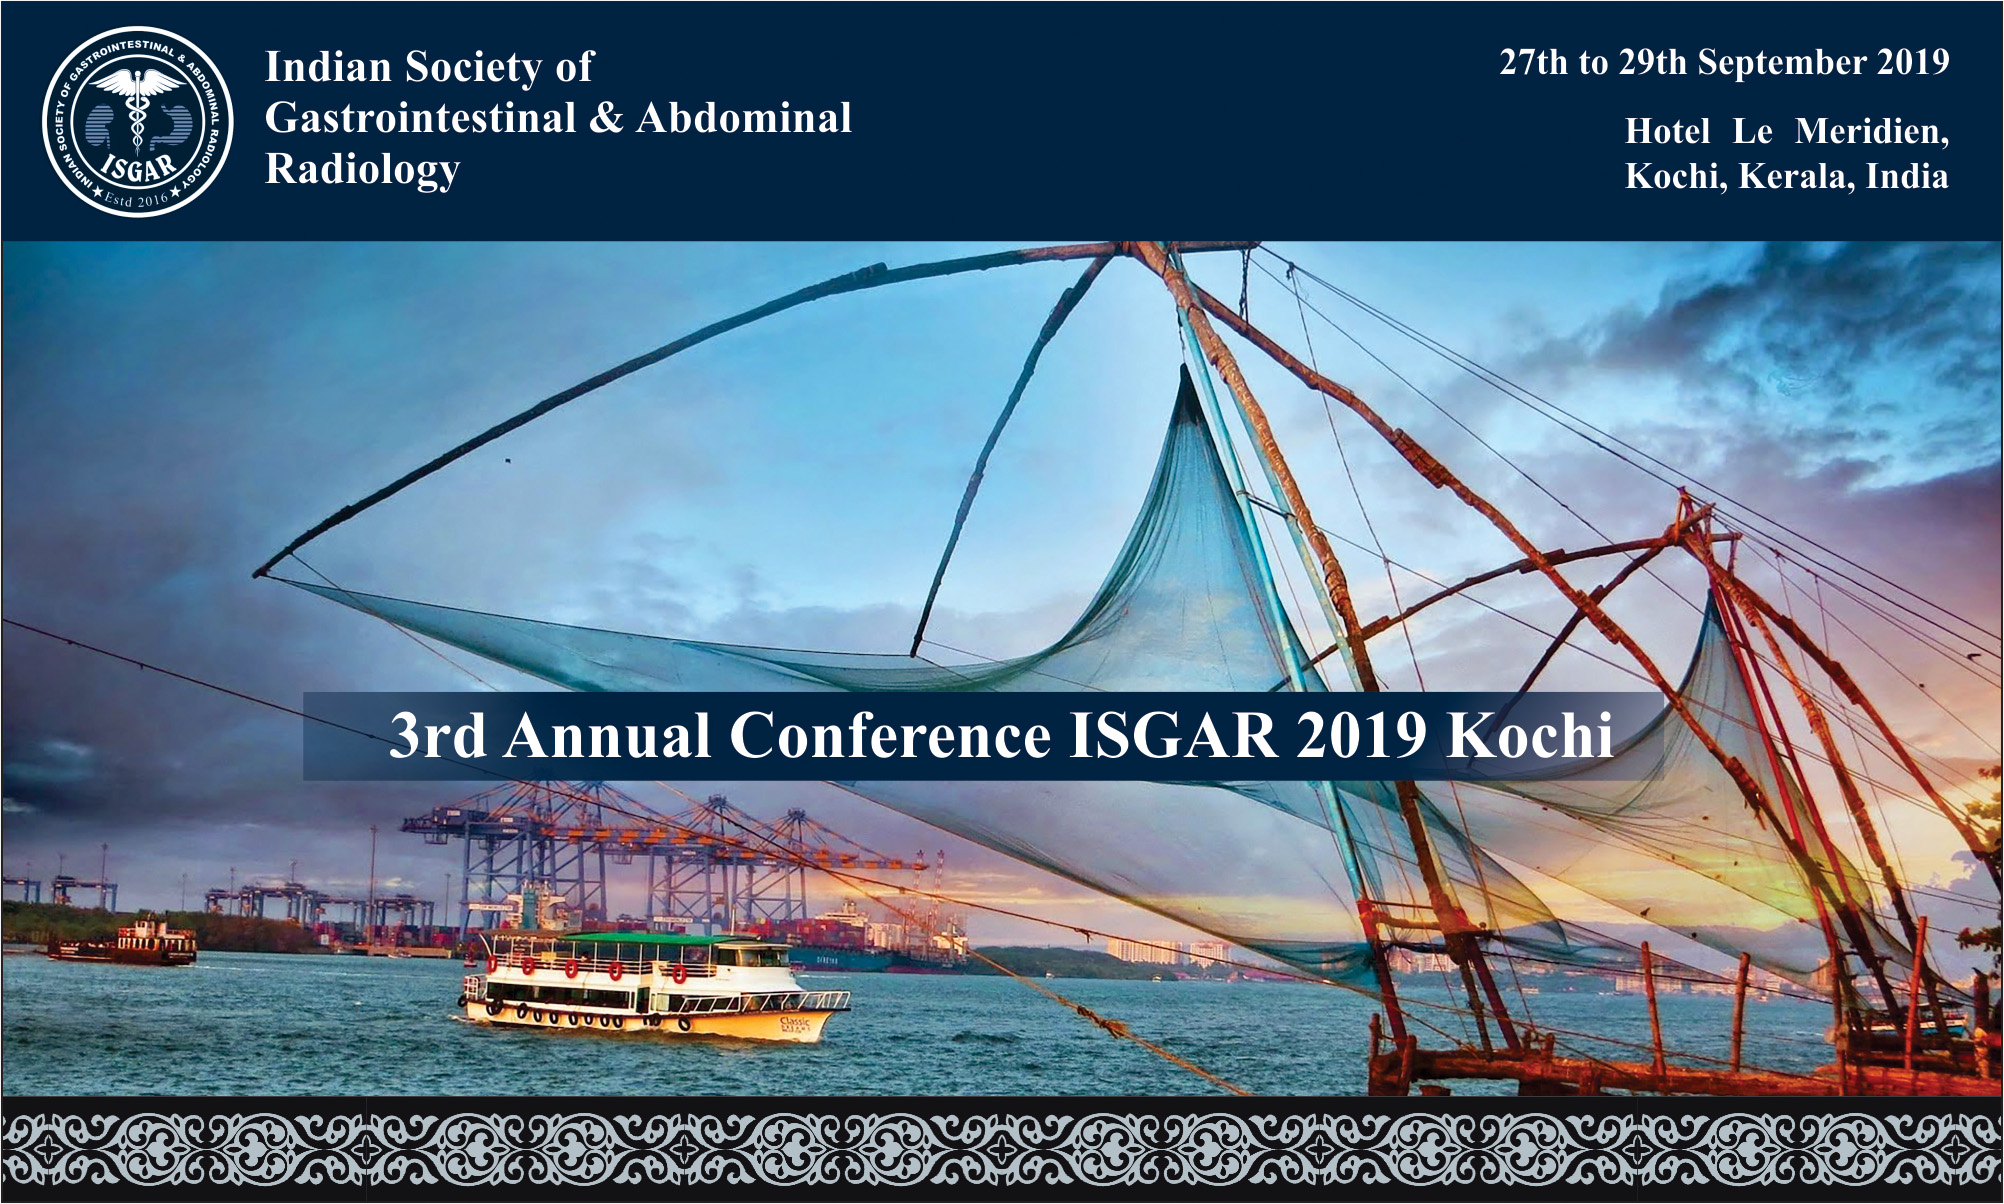 ISGAR 3rd Annual Conference